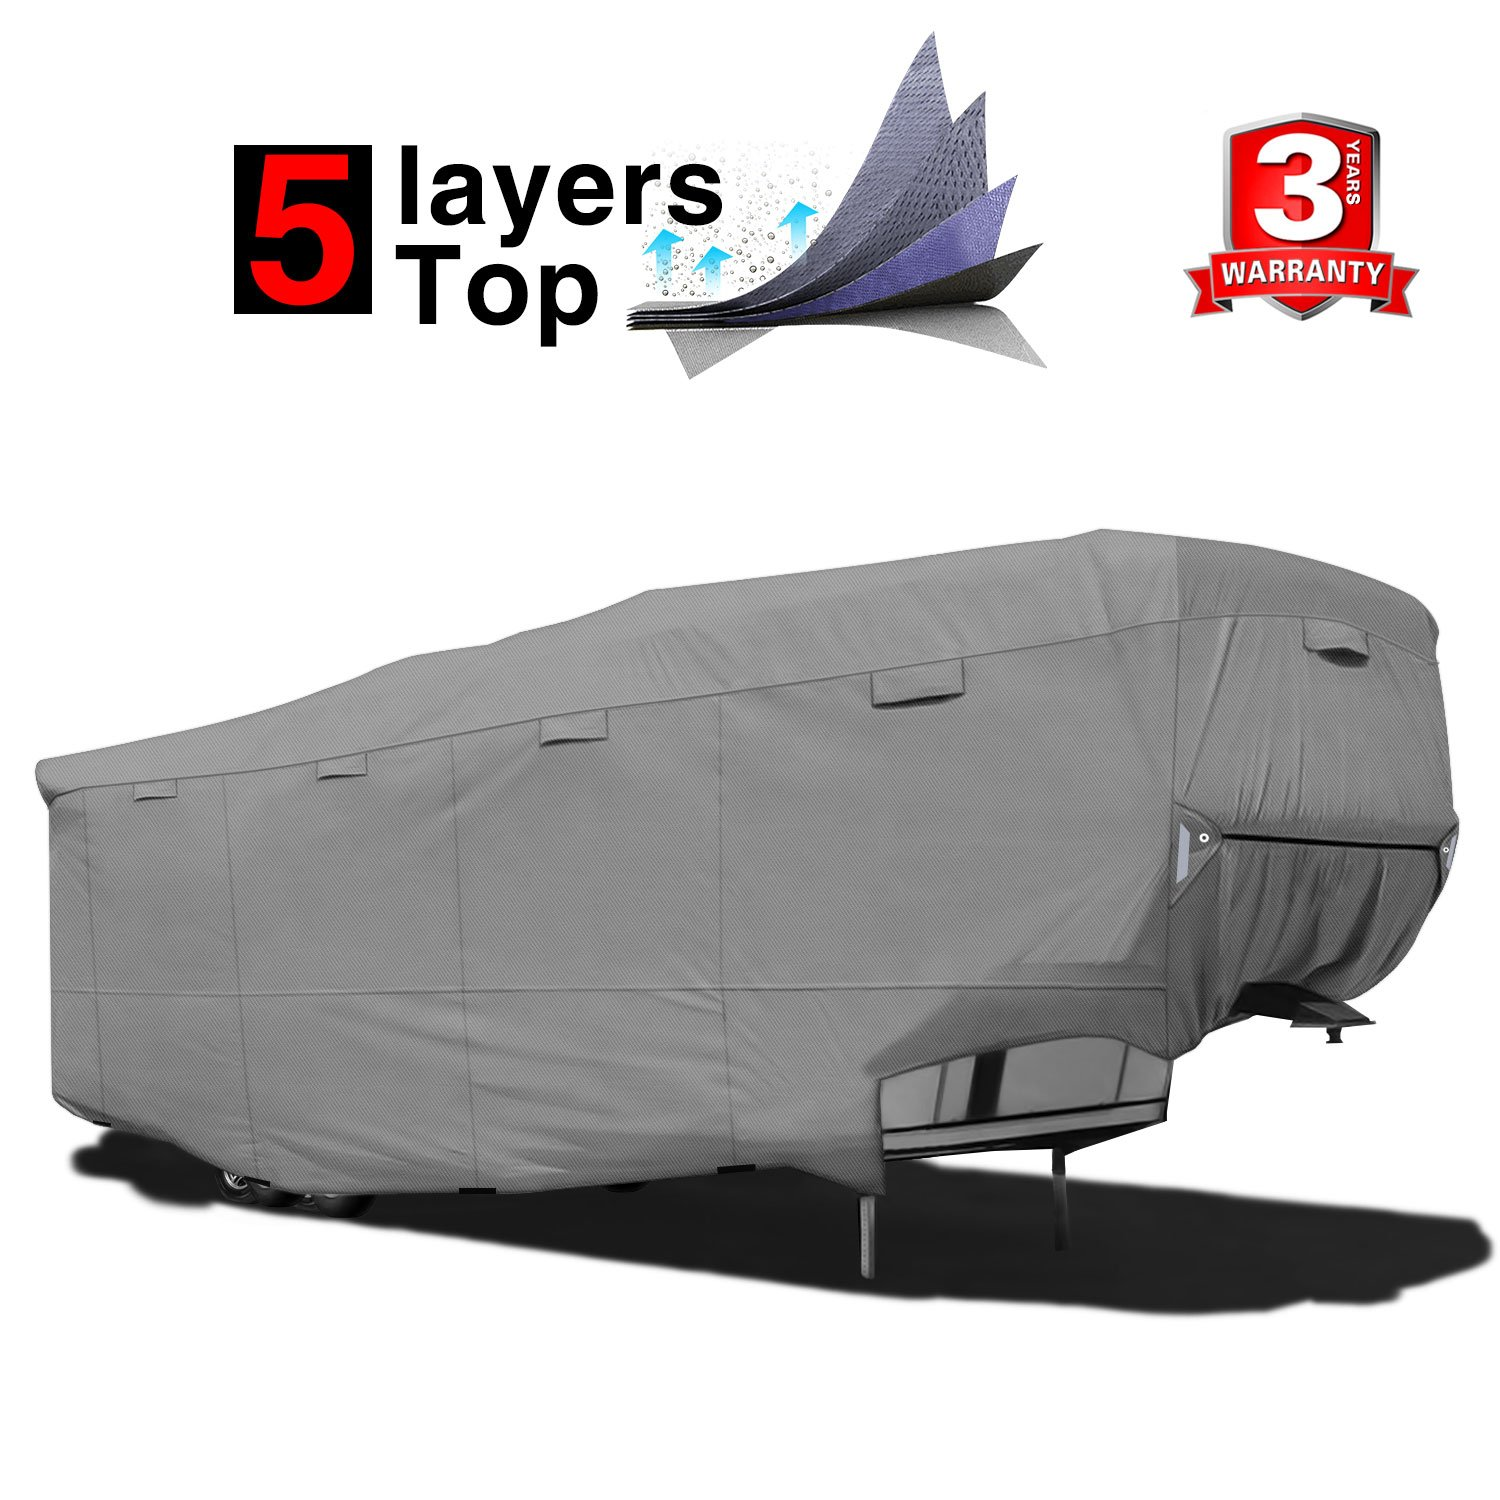 RVMasking Heavy Duty 5 Layers Top 5th Wheel Cover, Fits 31'1''-34'' RVs - Breathable Waterproof Ripstop Anti-UV RV Covers With 15 PCS Windproof Buckles & Adhesive Repair Patch(25.4''& 59'') by RVMasking